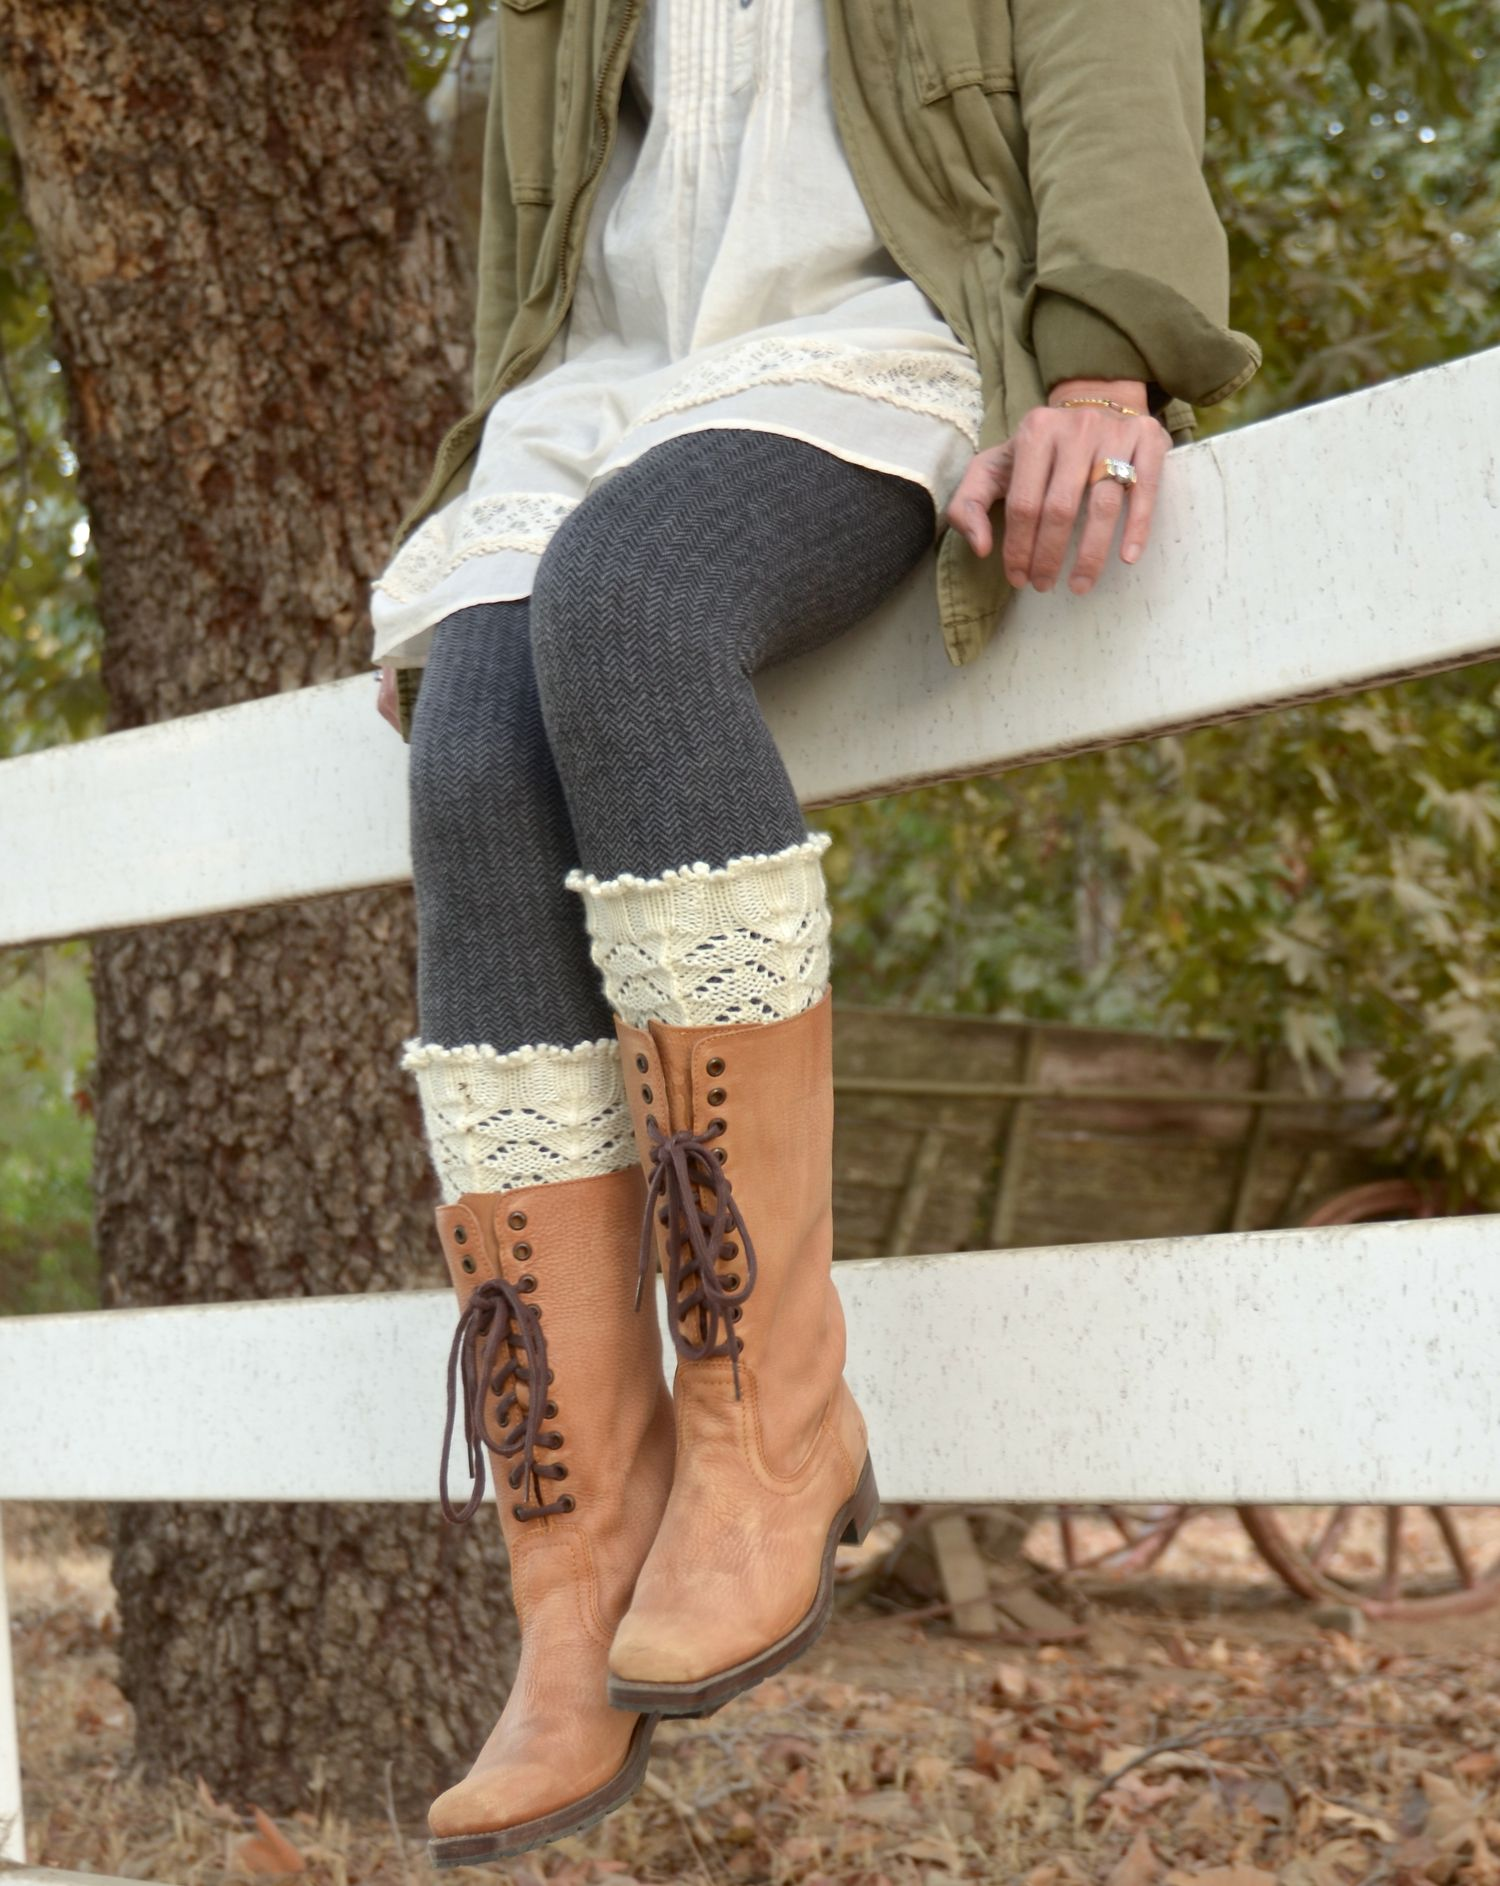 Holiday gift must knit 3 asheville asheville knitting asheville ruffled boot liners knitting pattern from pam powers knits bankloansurffo Choice Image